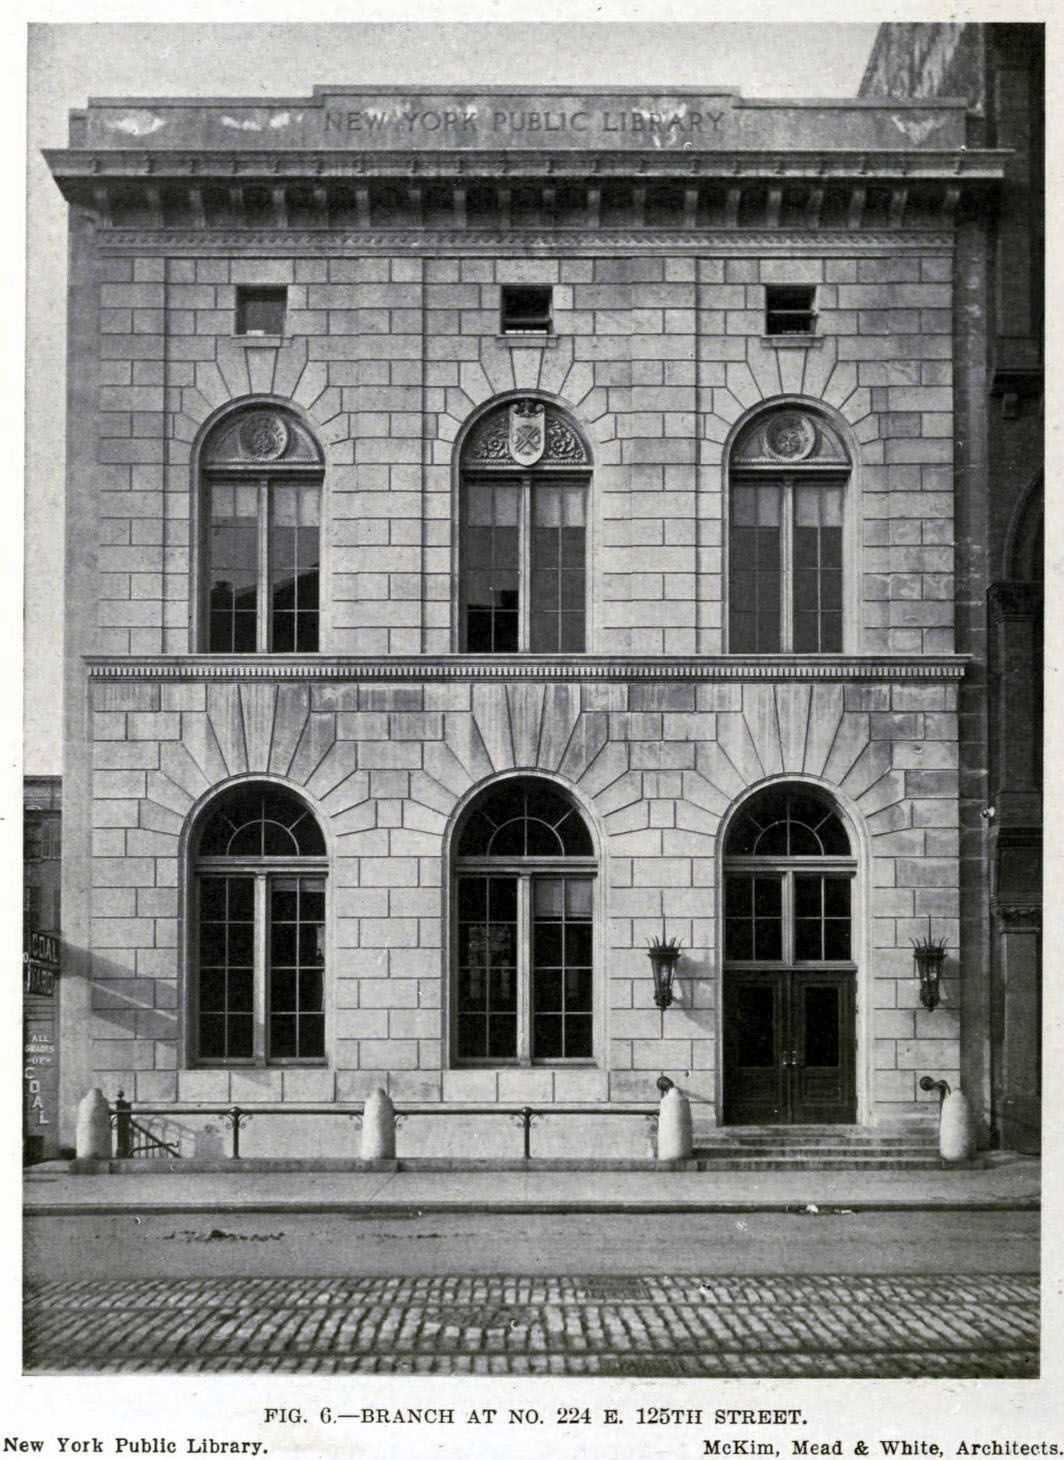 The New York Public Library Branch at 224 East 125th Street, New York City